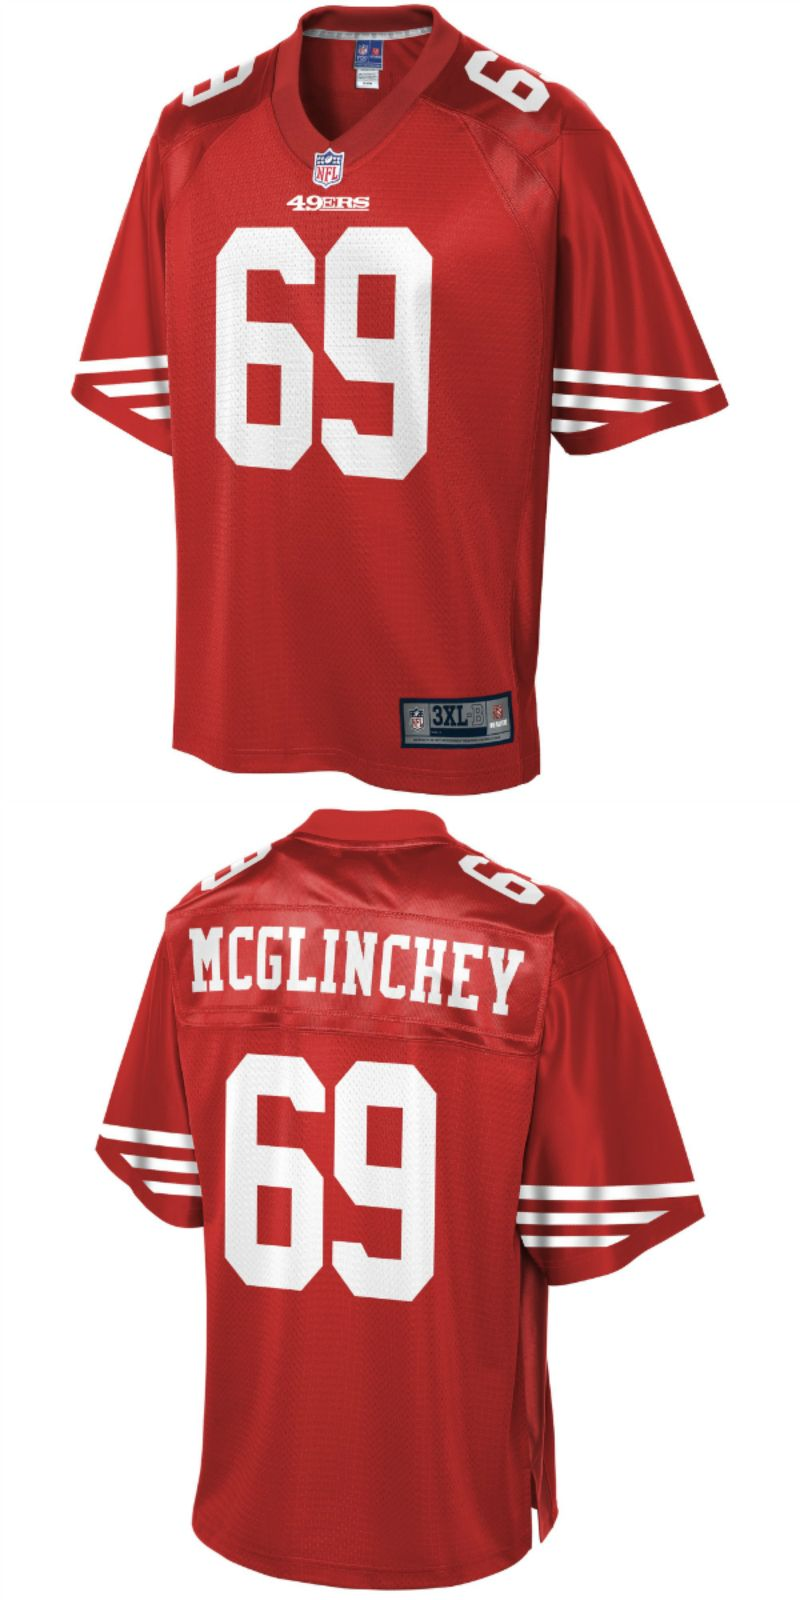 best loved 26f39 5e080 UP TO 70% OFF. Mike McGlinchey San Francisco 49ers NFL Pro ...